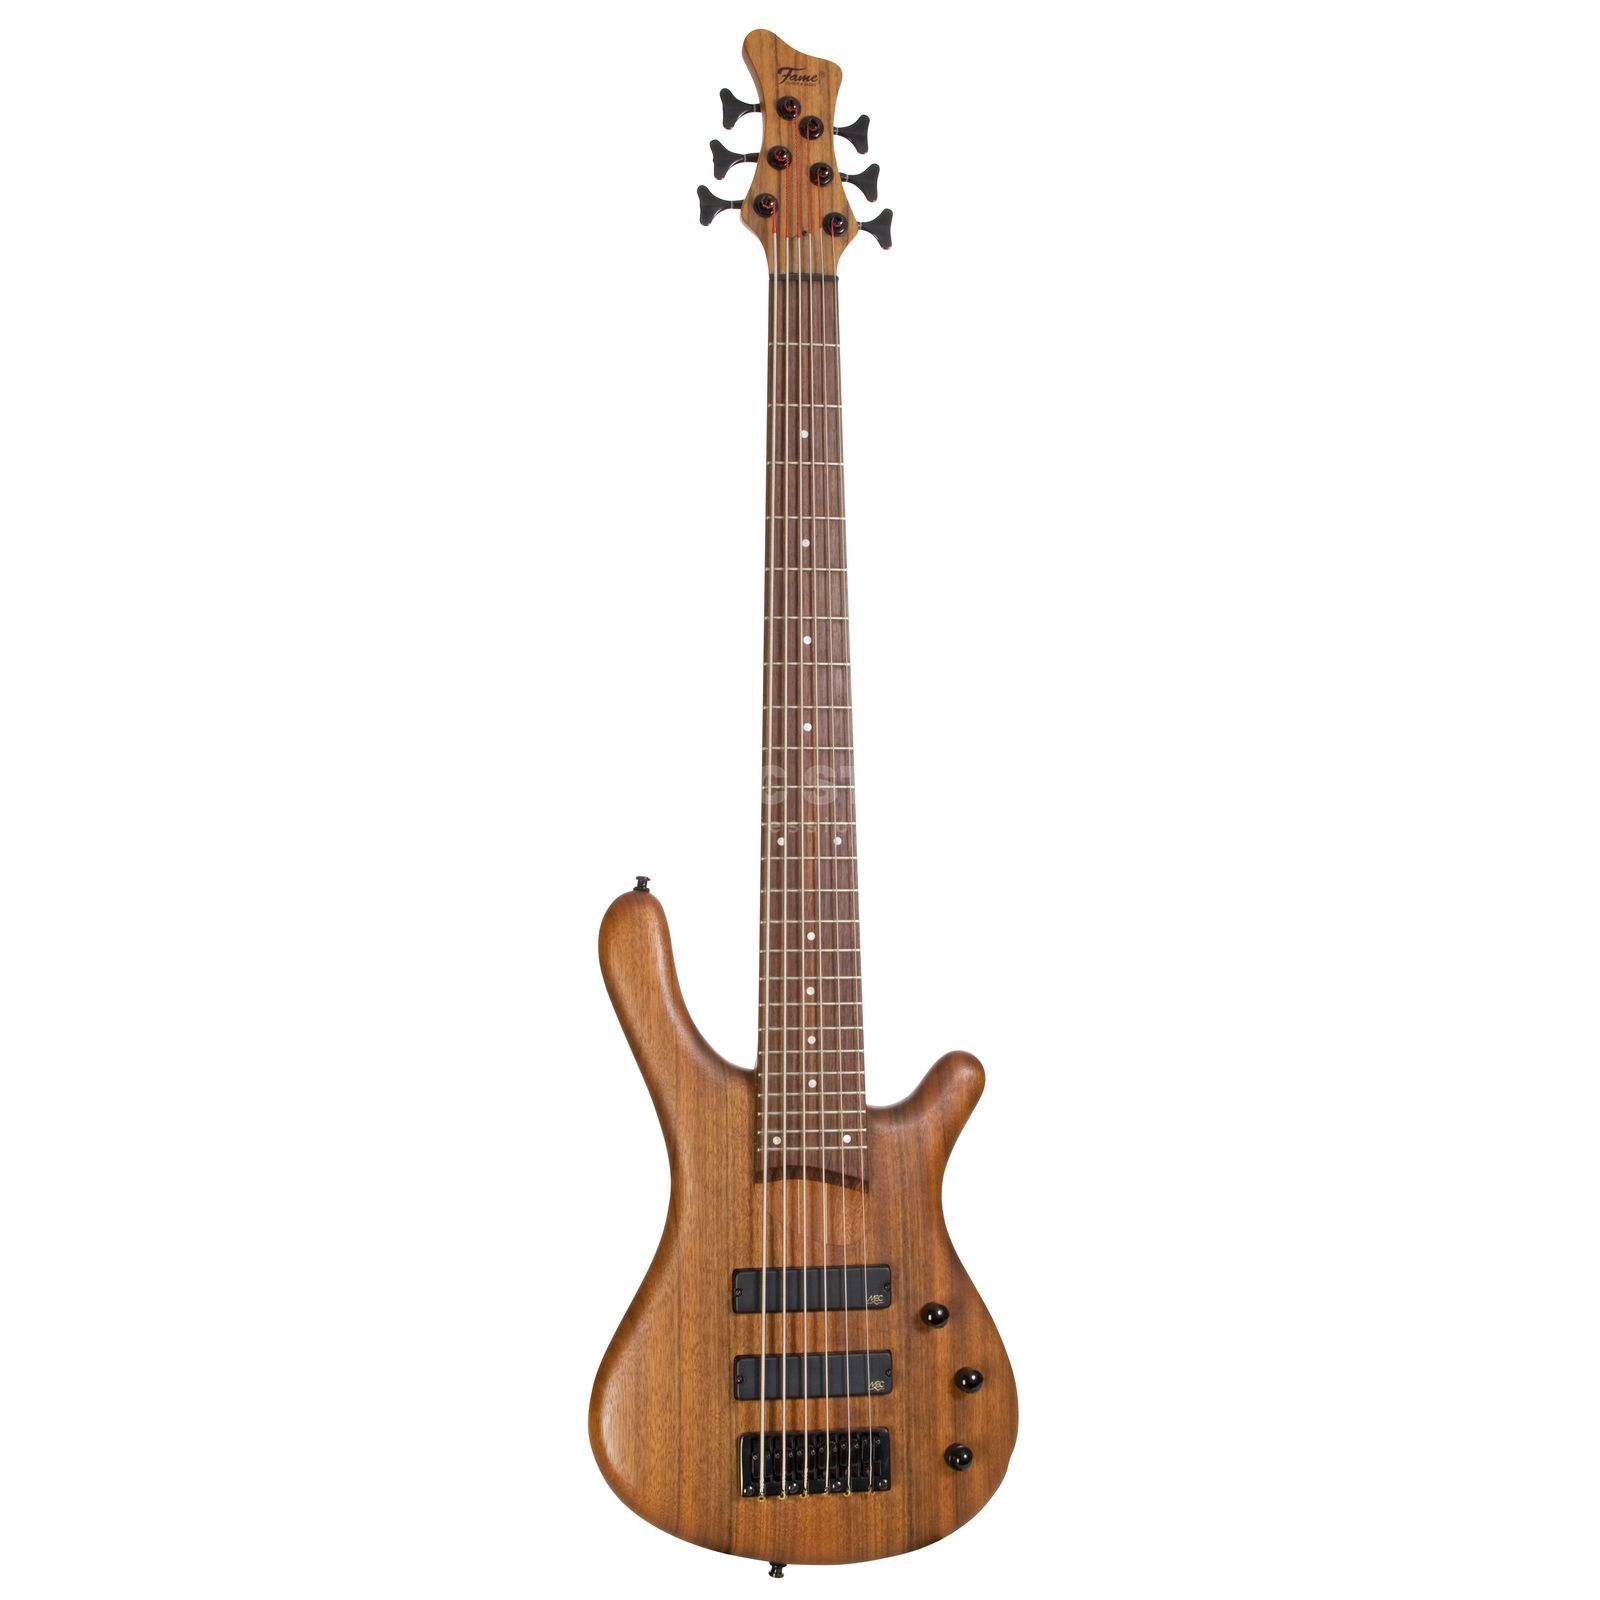 Fame Baphomet 6 NT 6-String E-Bass Guitar, Natural Oil Finish Zdjęcie produktu